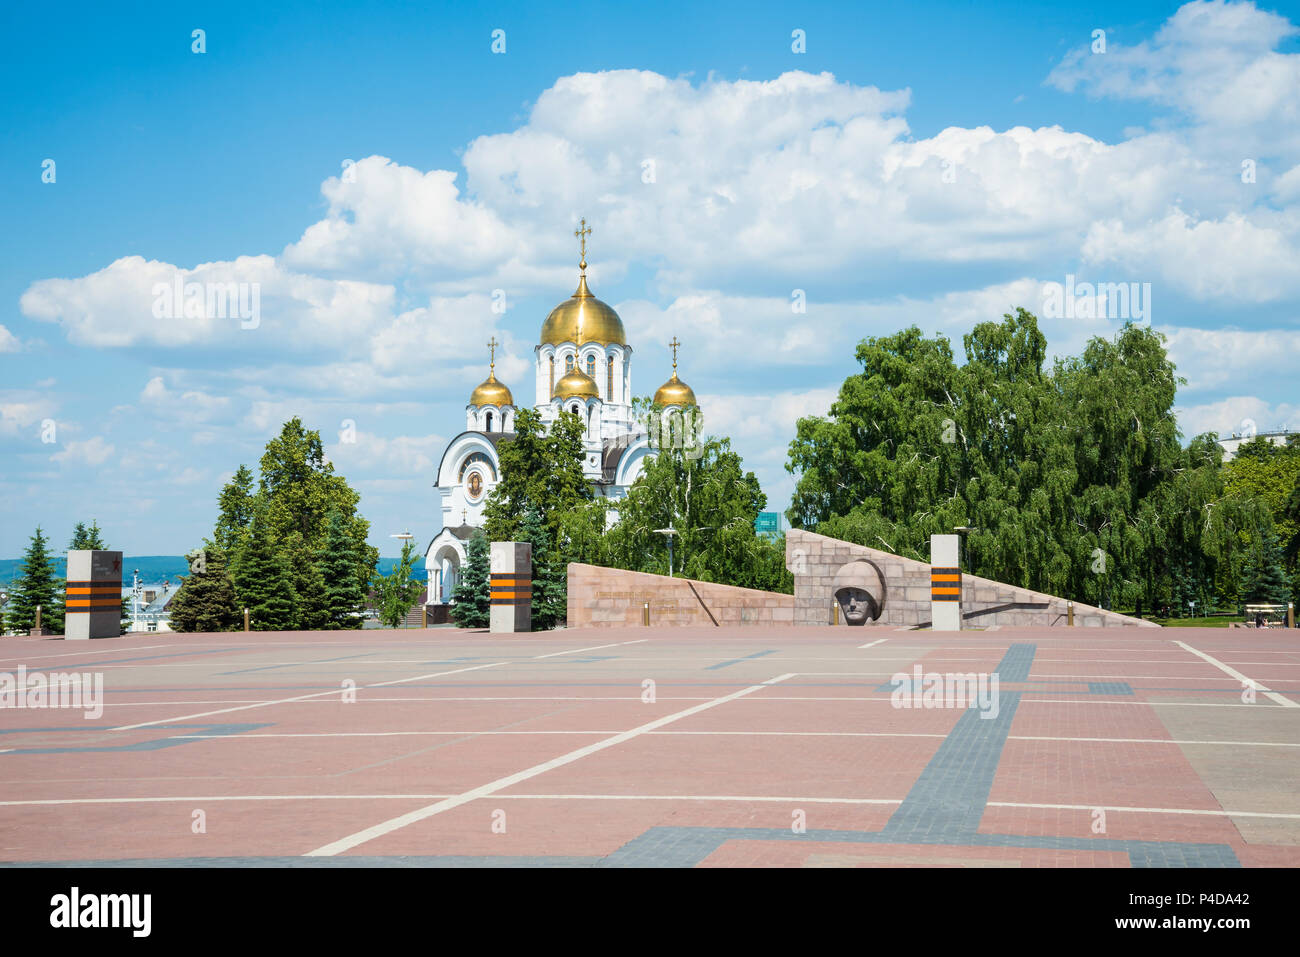 Church in honor of St. George the victorious and Memorial of the grieving mother Motherland in Victory square in Samara, Russia. - Stock Image